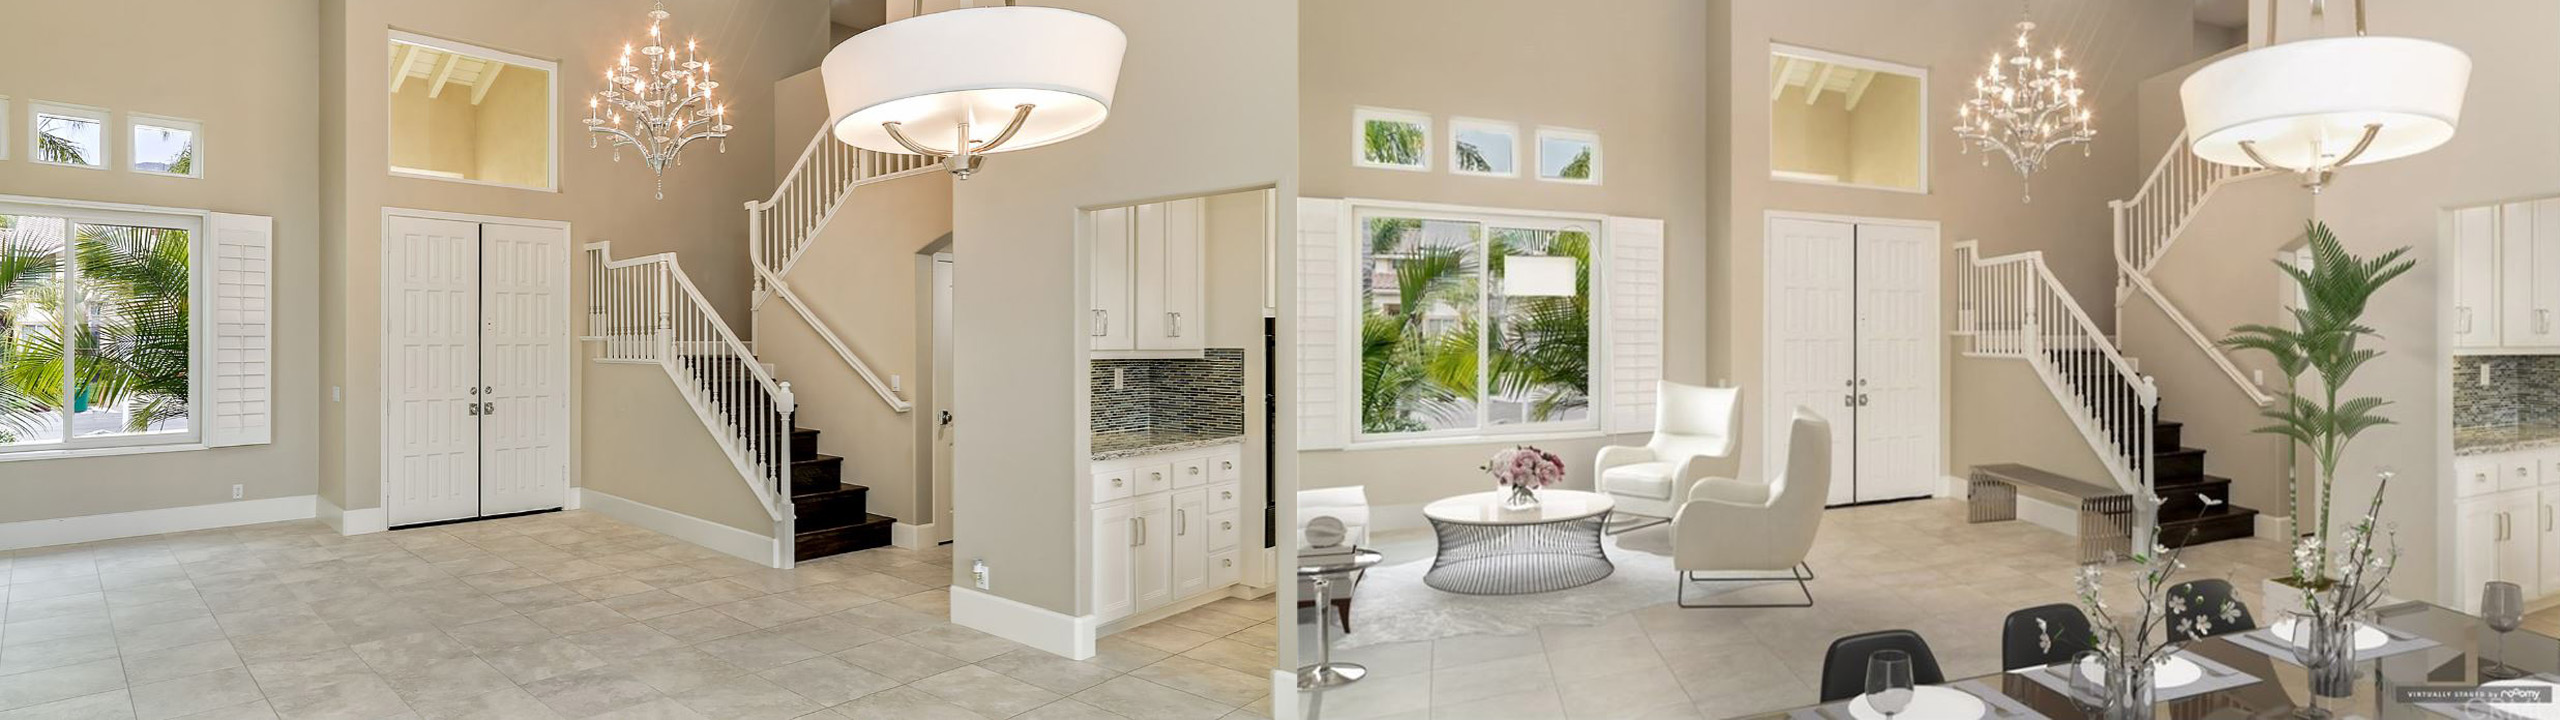 Real-Estate-Virtual-Staging-Living-Room-2